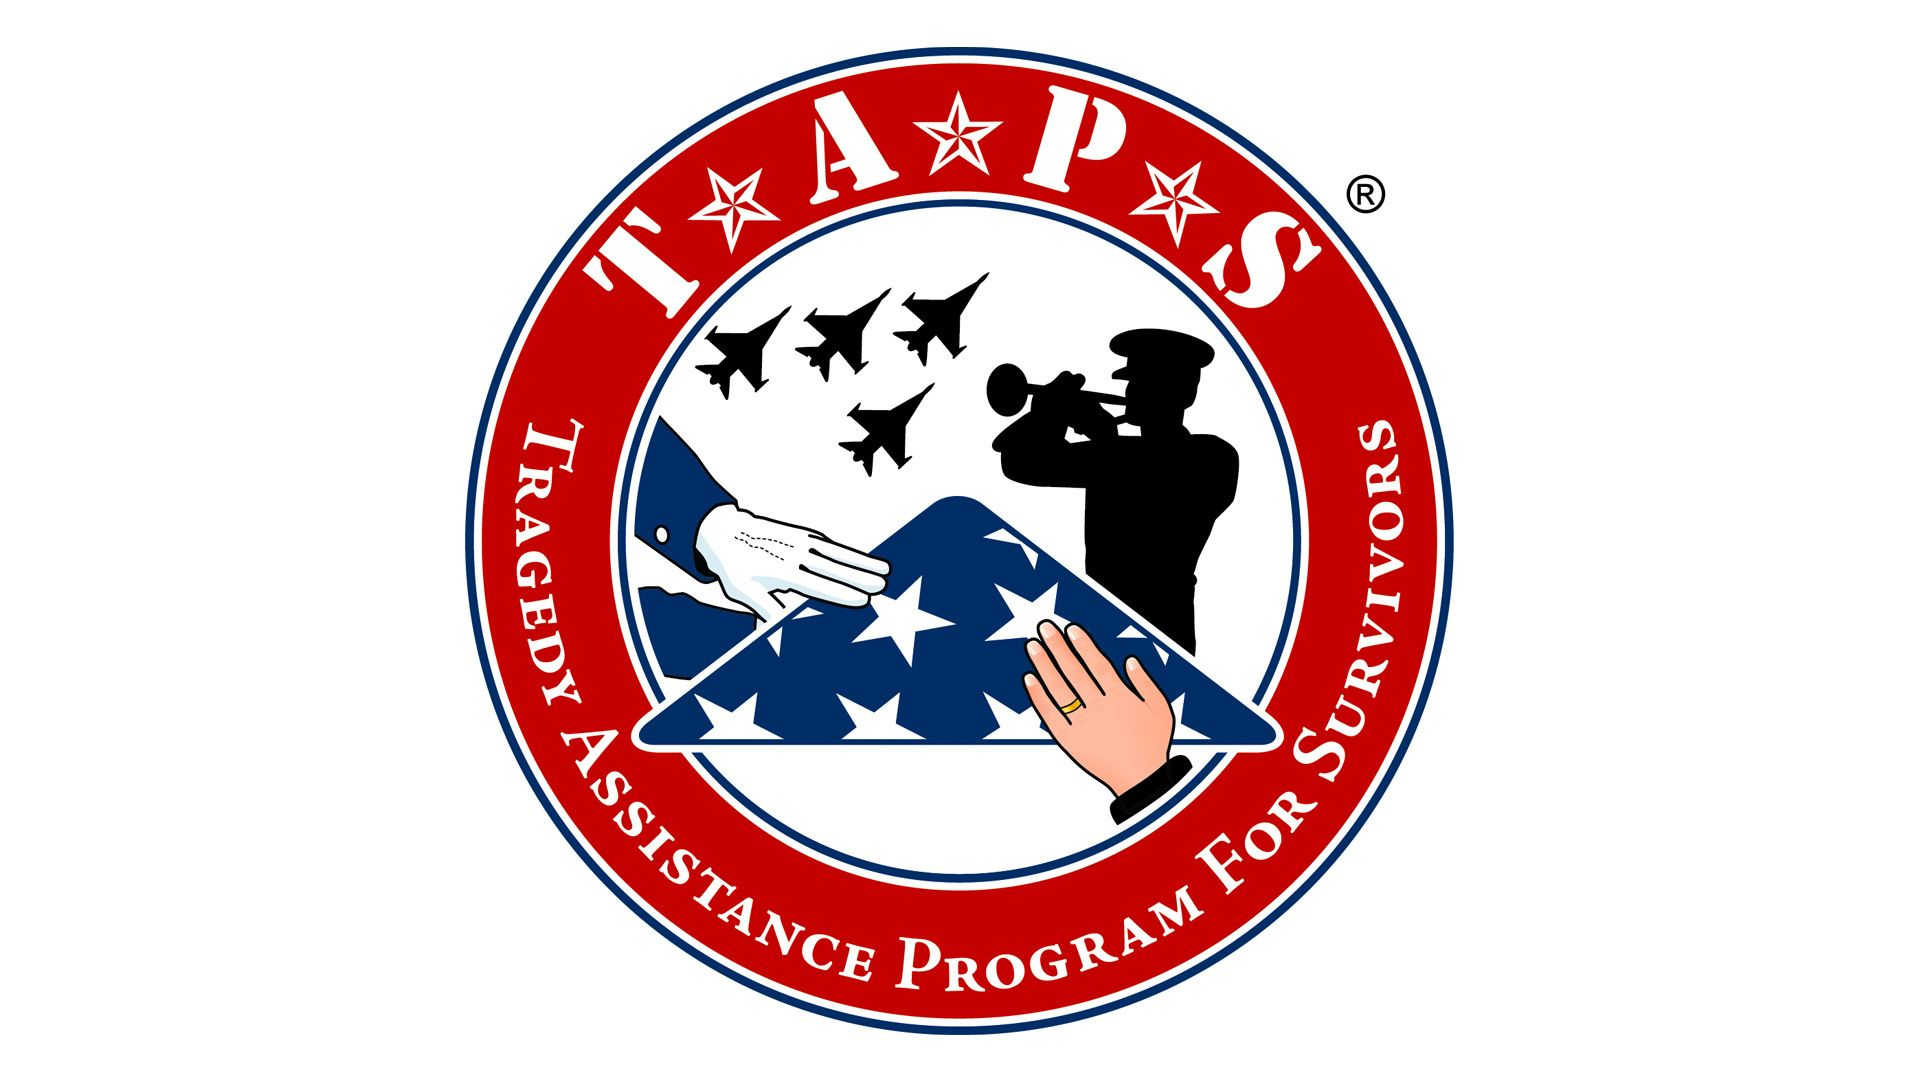 Tragedy Assistance Program